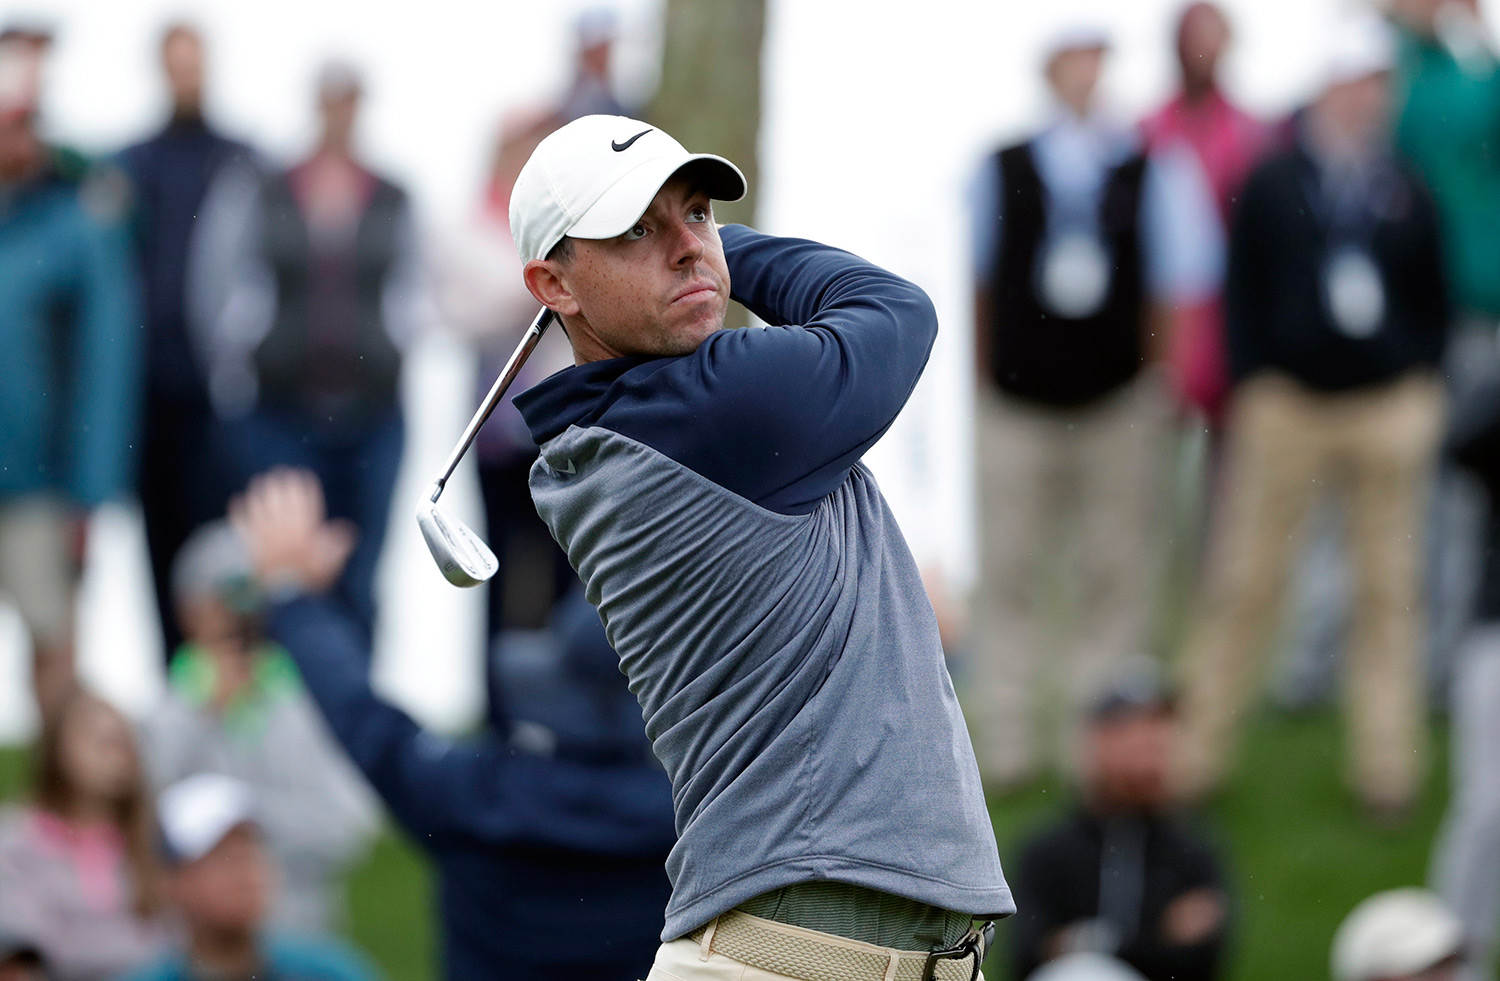 Rory McIlroy on his way to victory at the Players Championship in Florida. Picture: Lynne Sladky